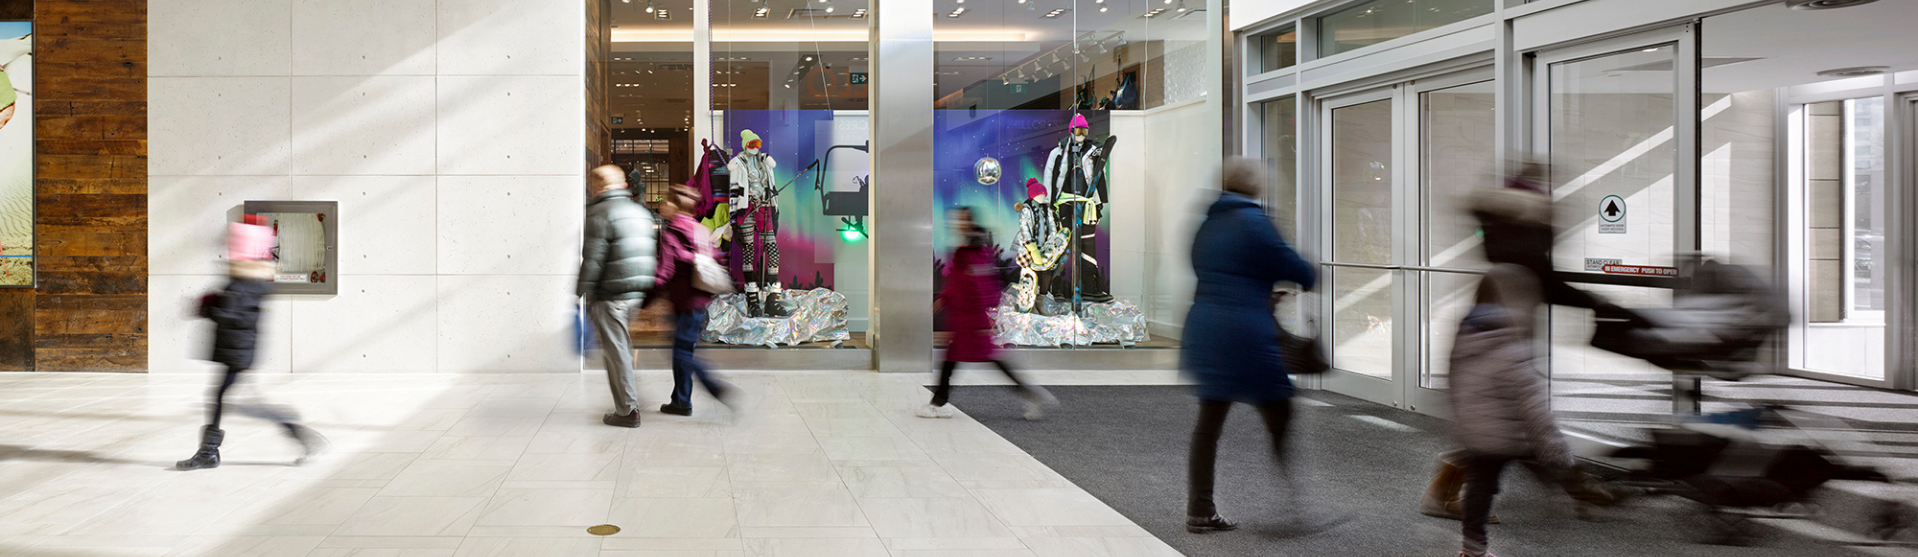 People walking throughout the centre